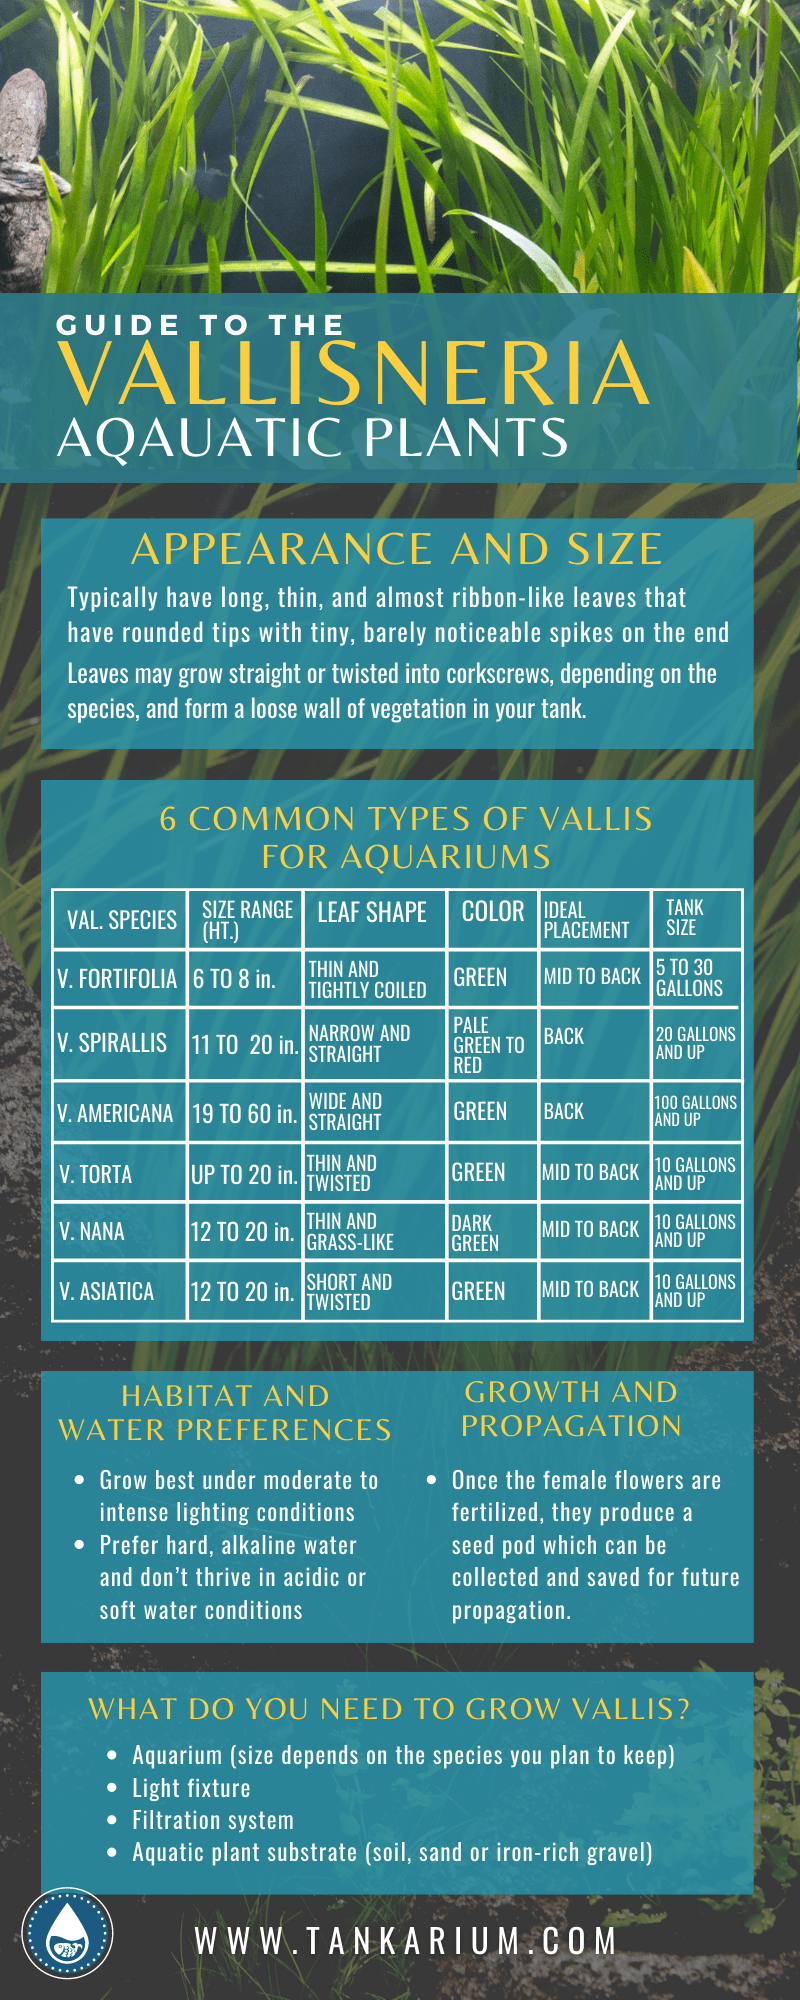 Guide to the Vallisneria Aquatic Plants - Inforgraphic